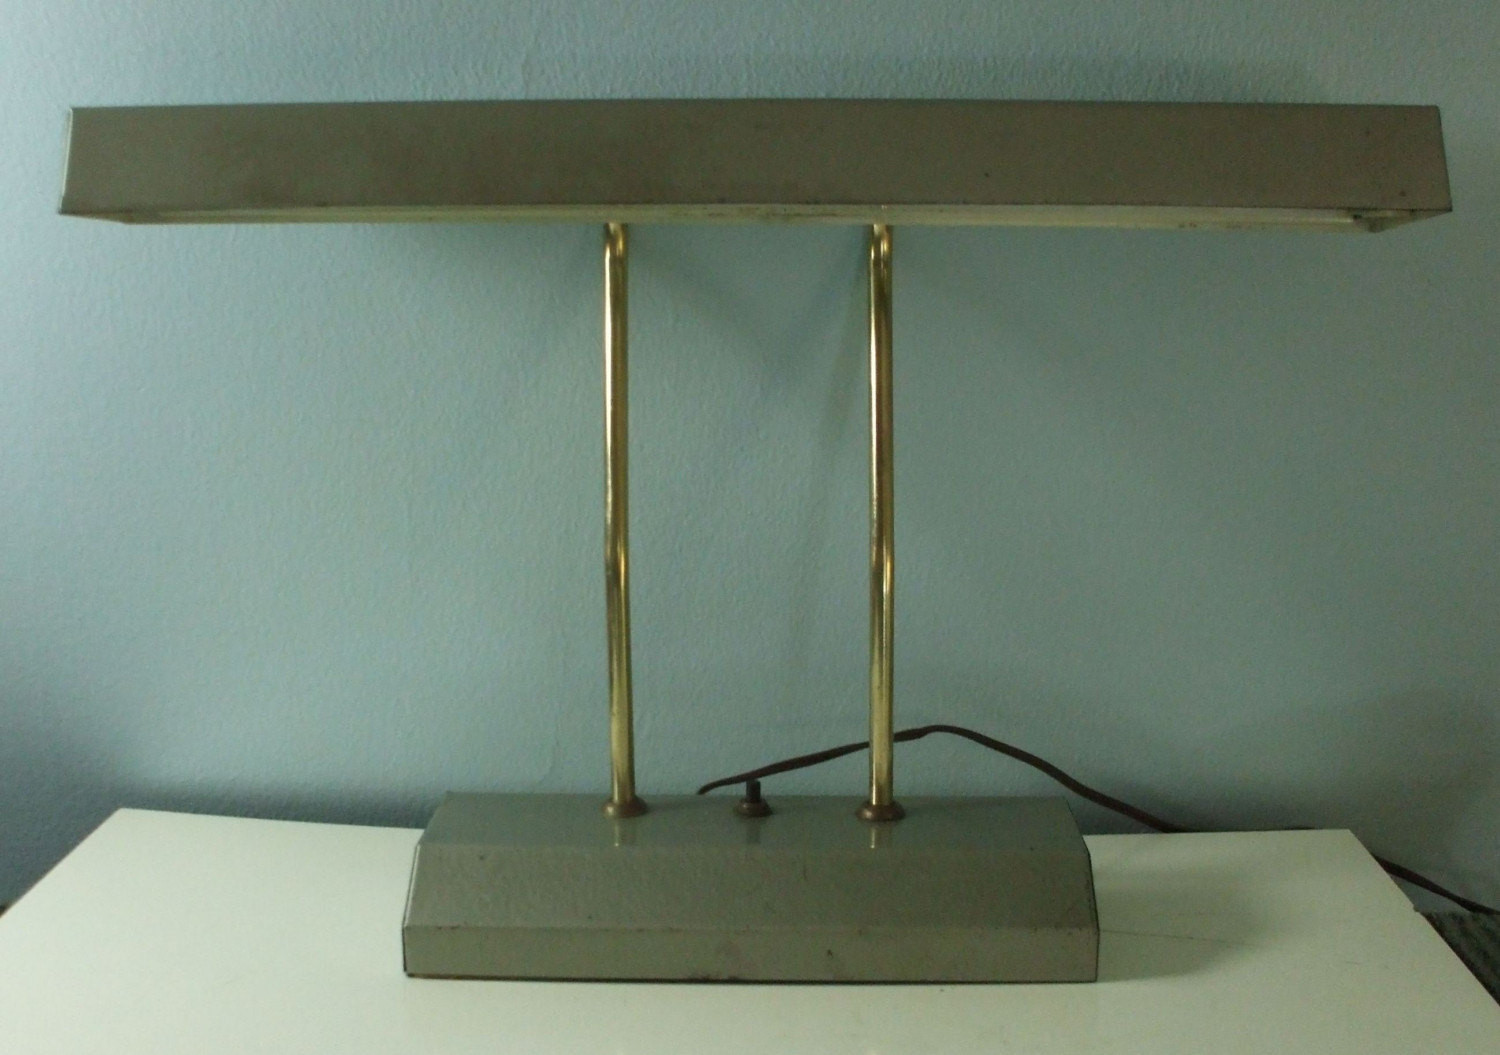 Best ideas about Fluorescent Desk Lamp . Save or Pin vintage gray metal desk lamp fluorescent bulb Now.